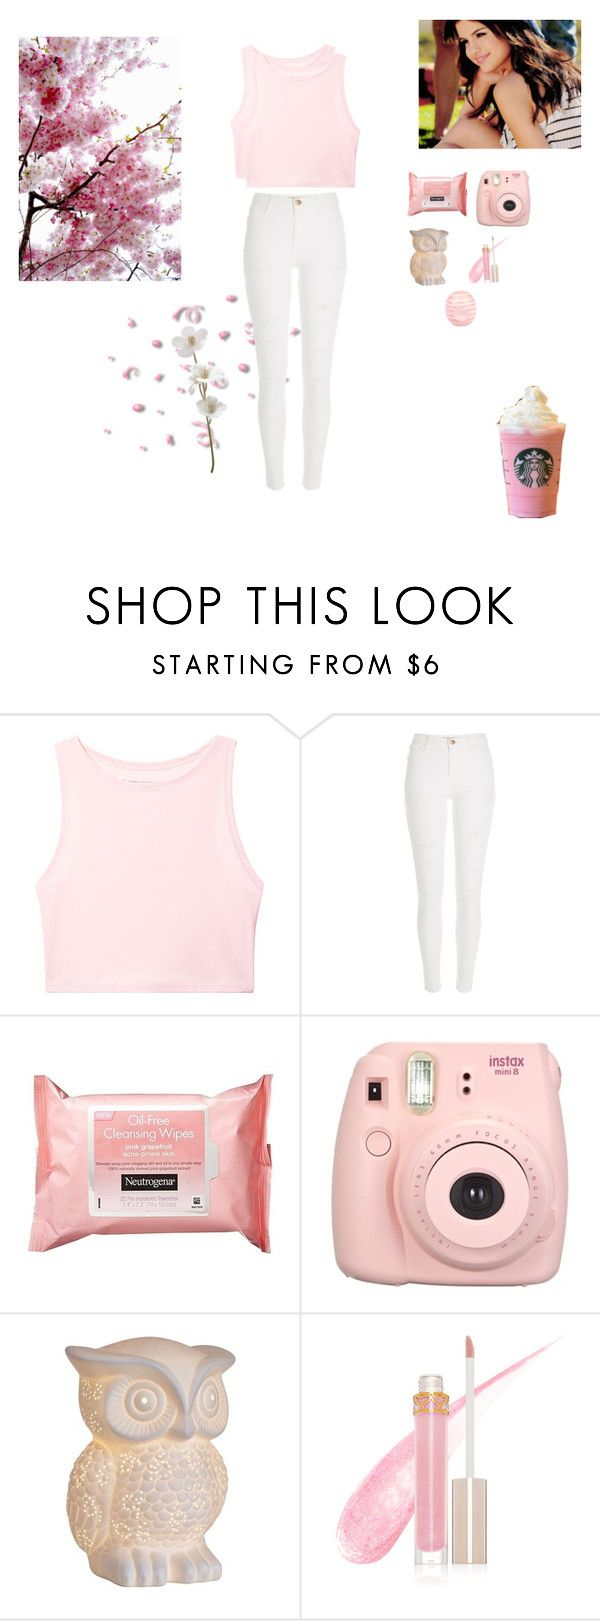 """Chill"" by seafoam-volleyball ❤ liked on Polyvore featuring Victoria's Secret, River Island, Neutrogena and Stila"